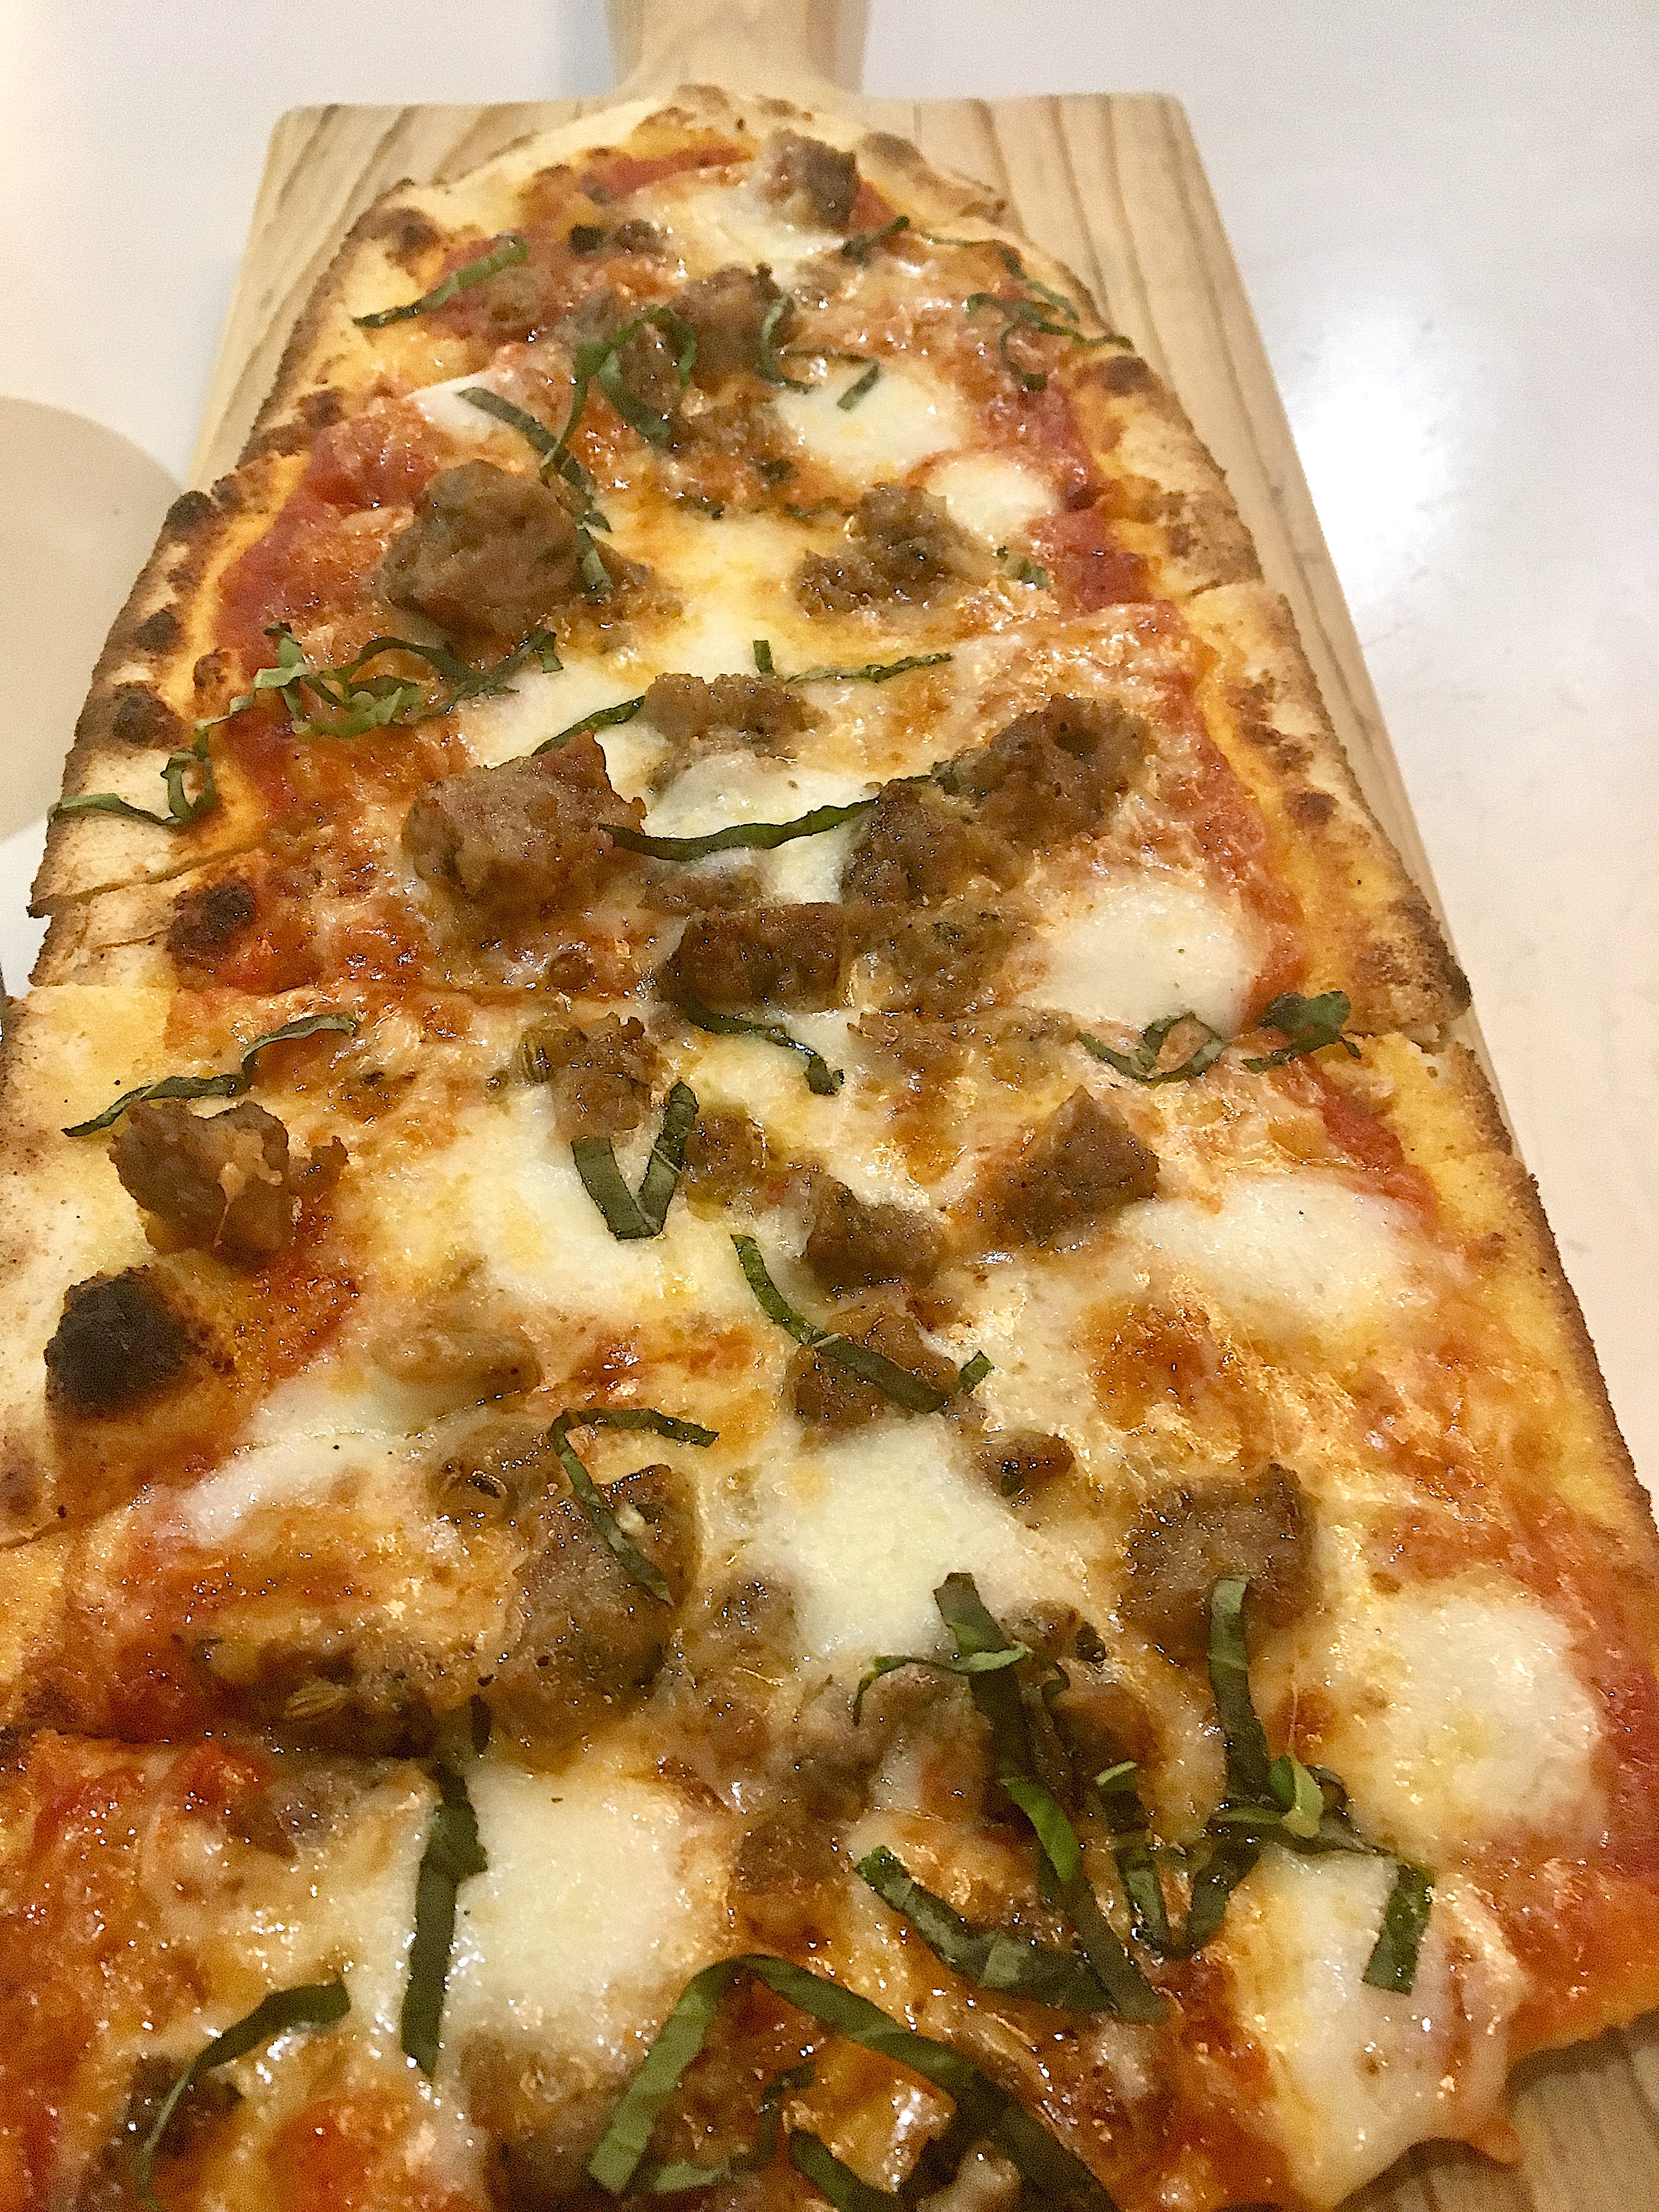 Homemade Meatball Flatbread Emeril's